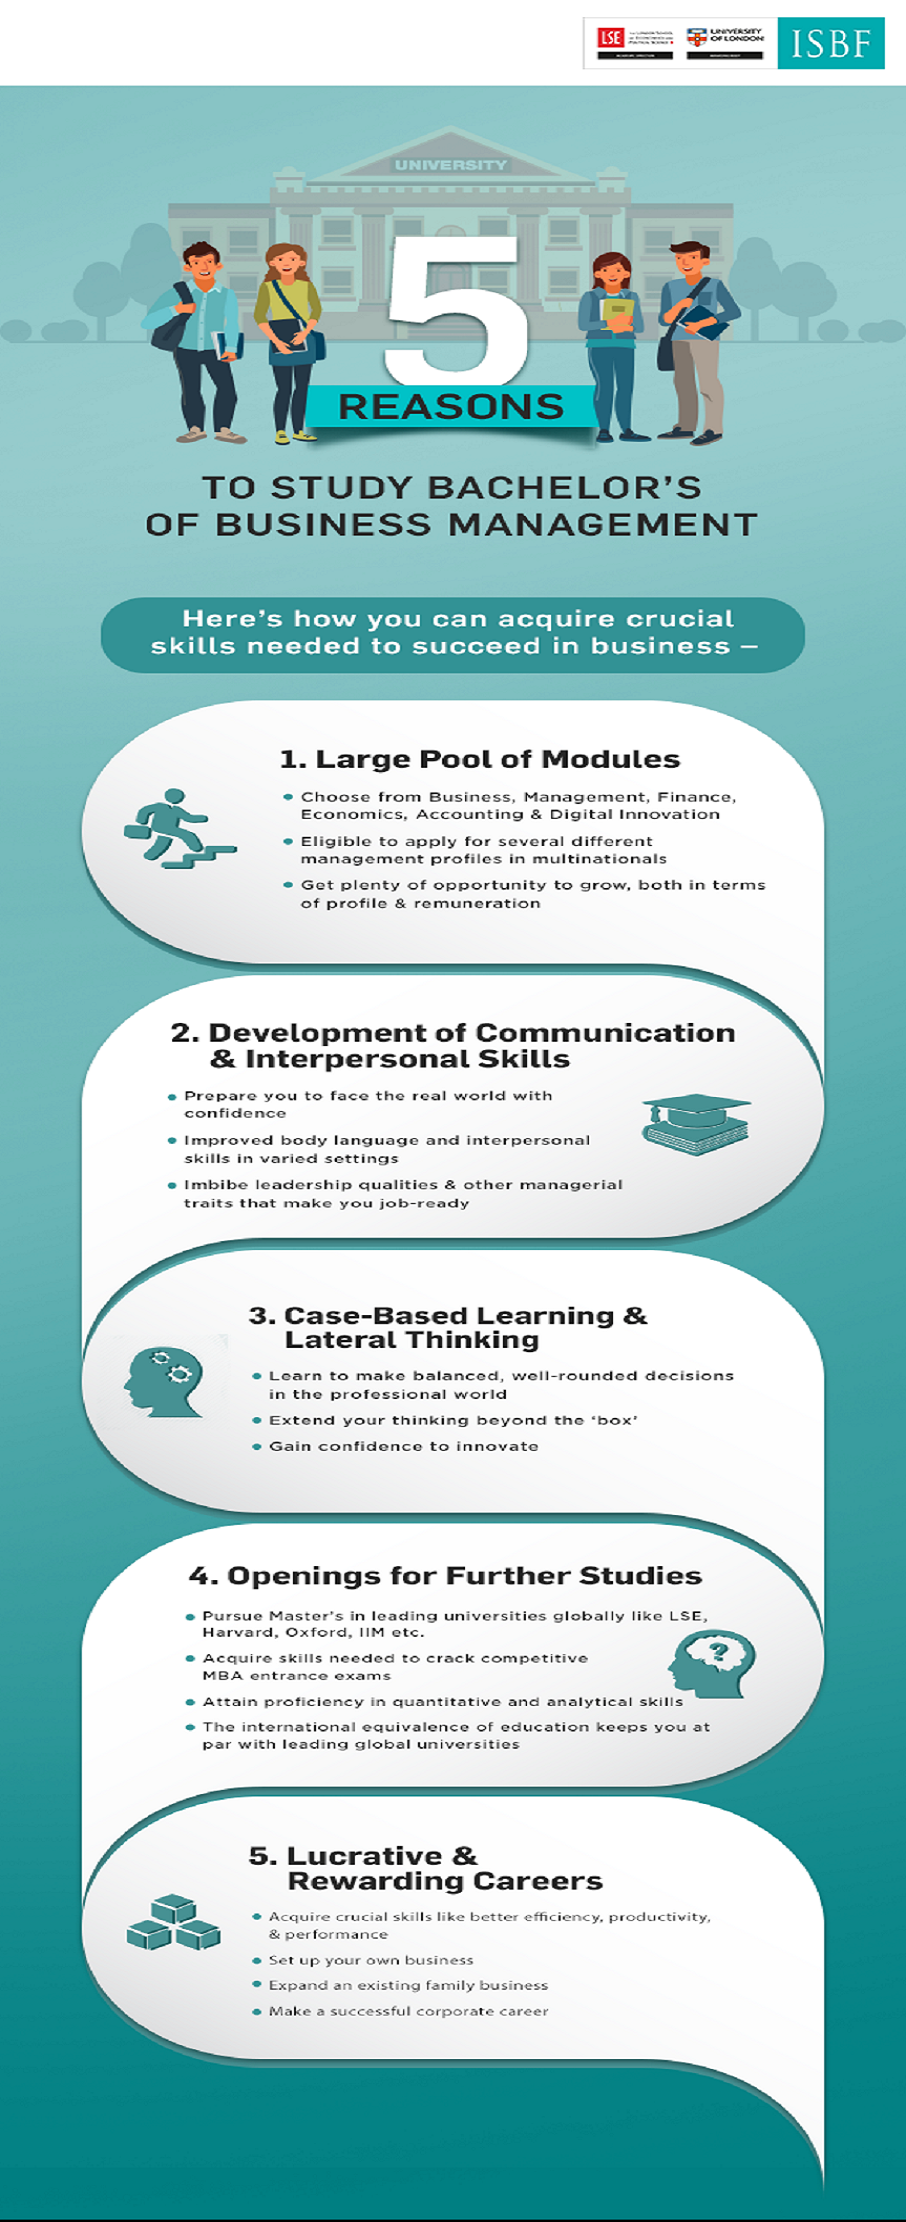 Reasons to Study Bachelors of Business Management Infographic